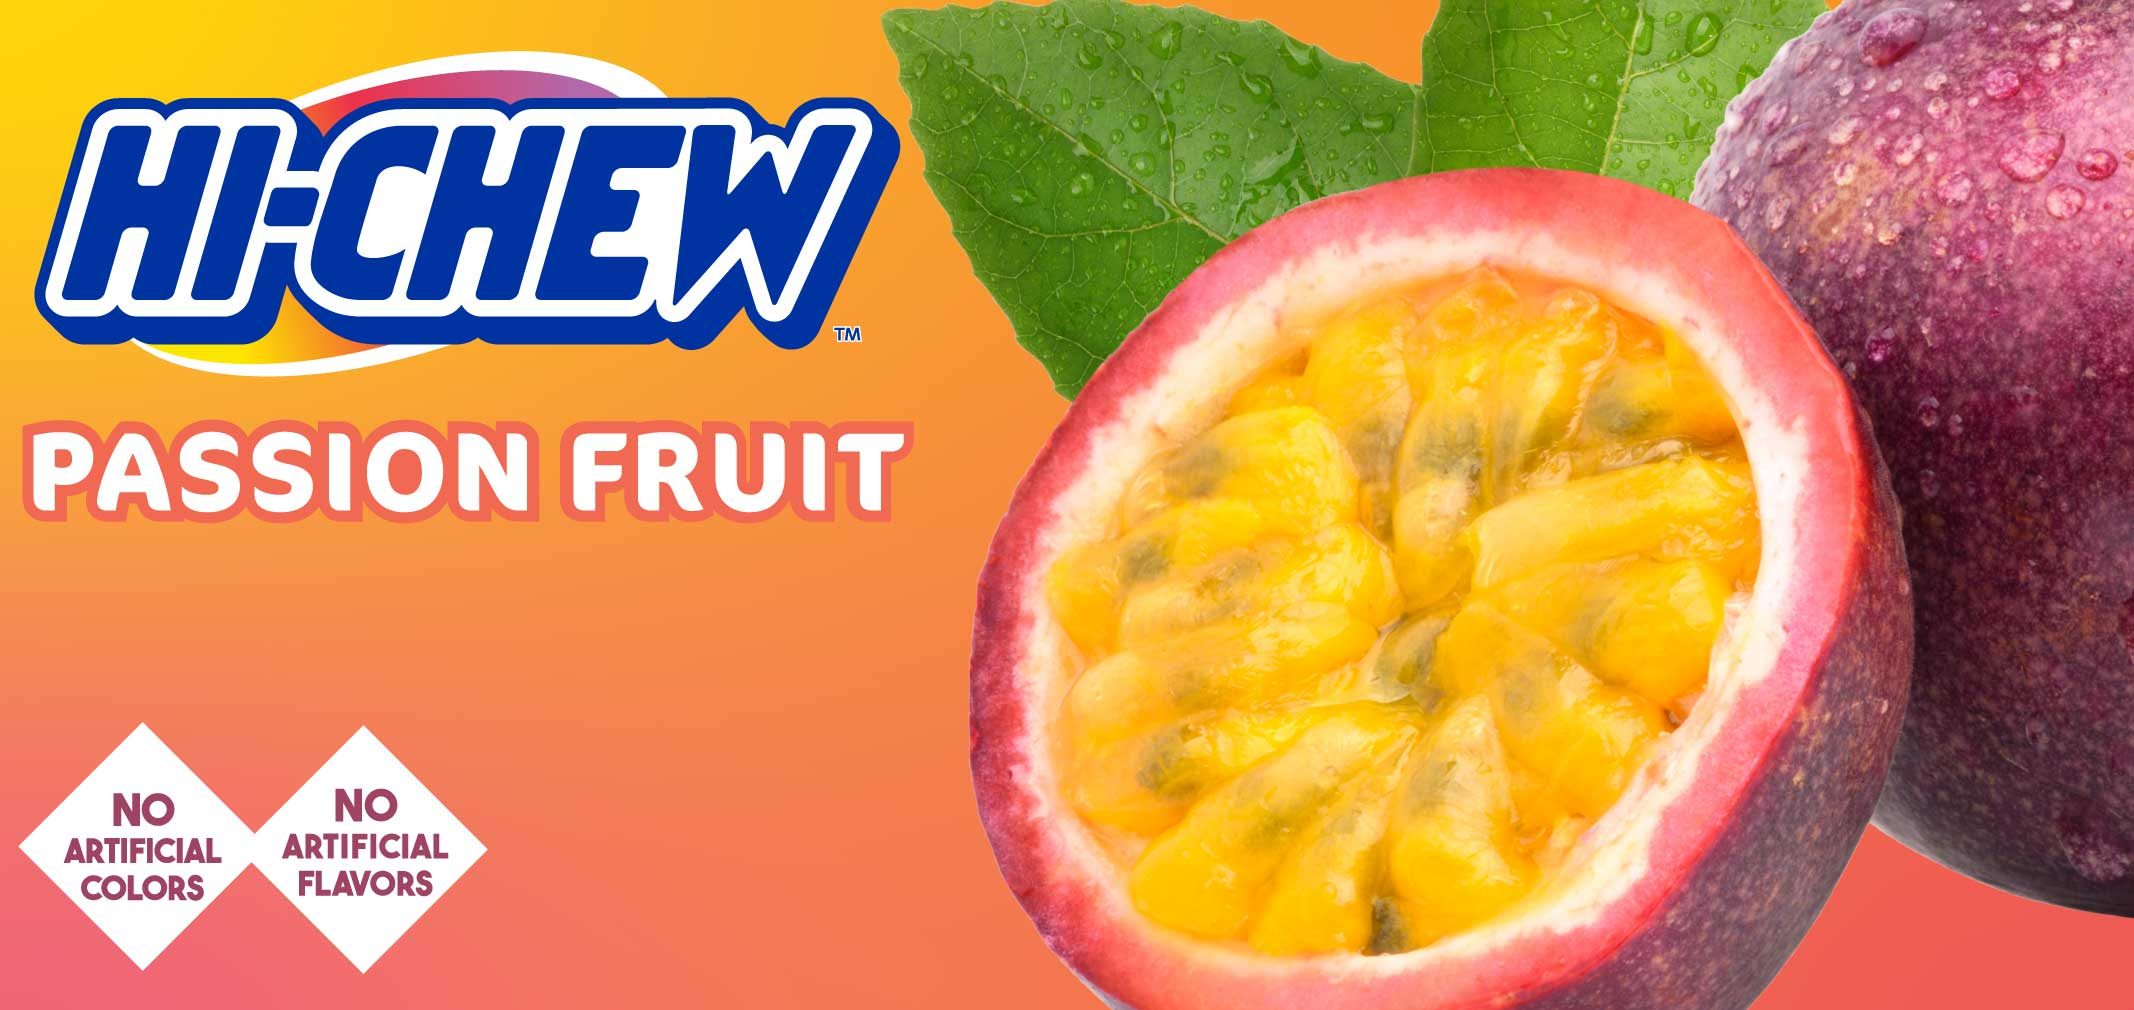 HI-CHEW™ Passion Fruit label image